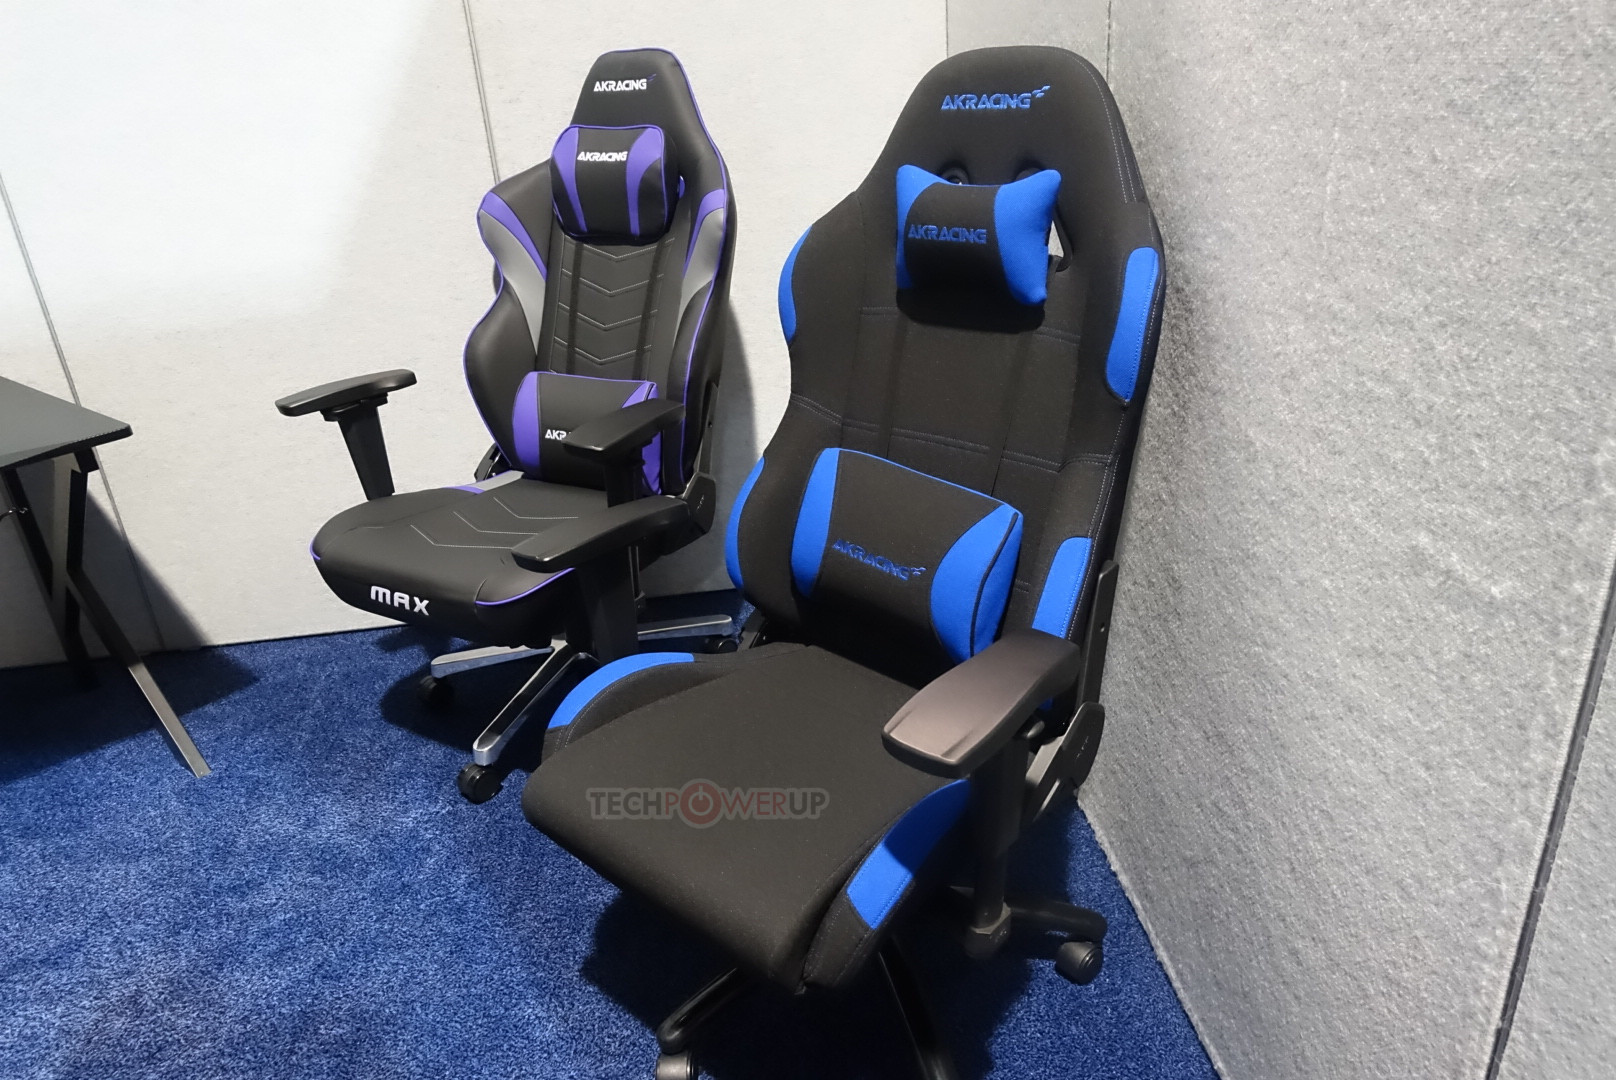 gaming chair companies nash fishing accessories akracing shows off chairs at ces 2018 techpowerup this particular advantage of s over other producing could be the hedge company needs for increased relevance in